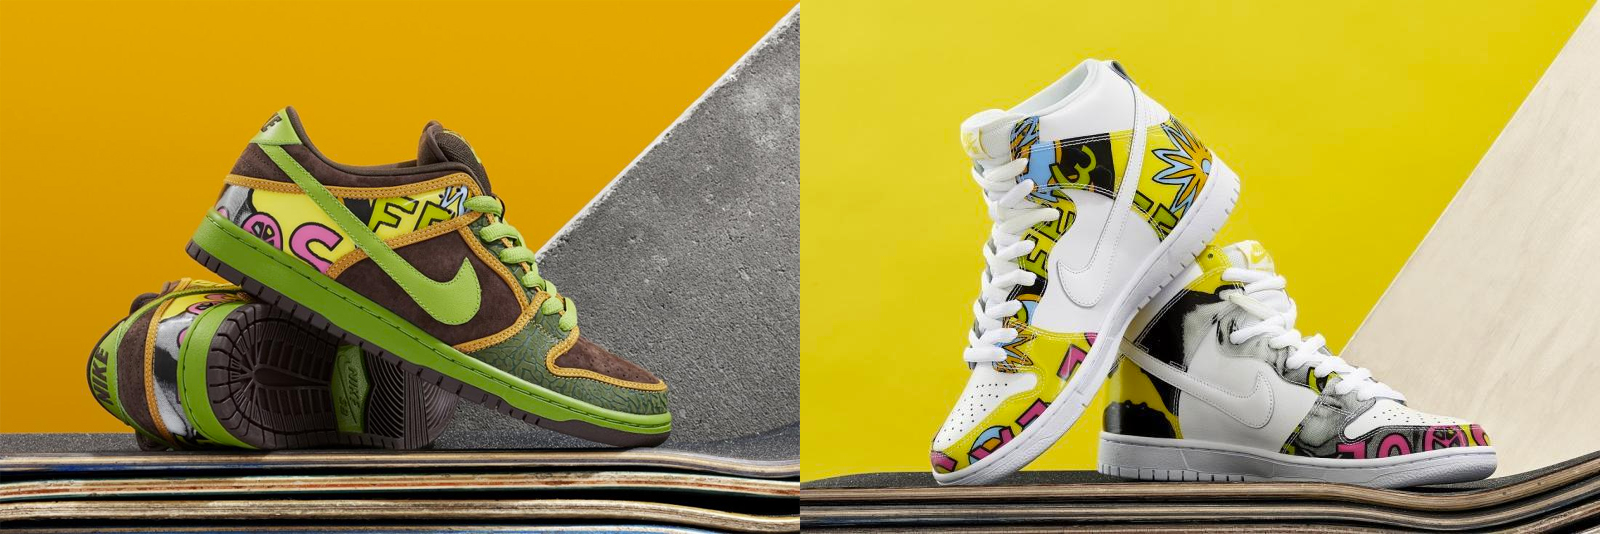 new concept 93528 336c5 The Best Nike SB Dunk Releases This Year - The Hundreds